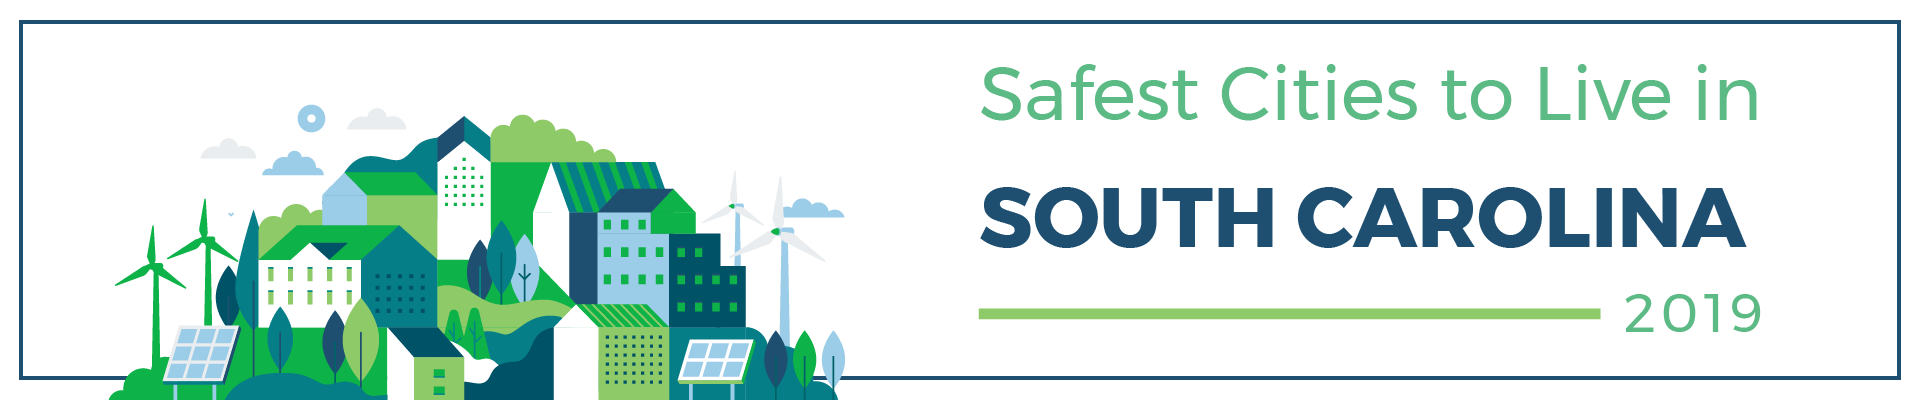 header - safest_cities_south_carolina_2019